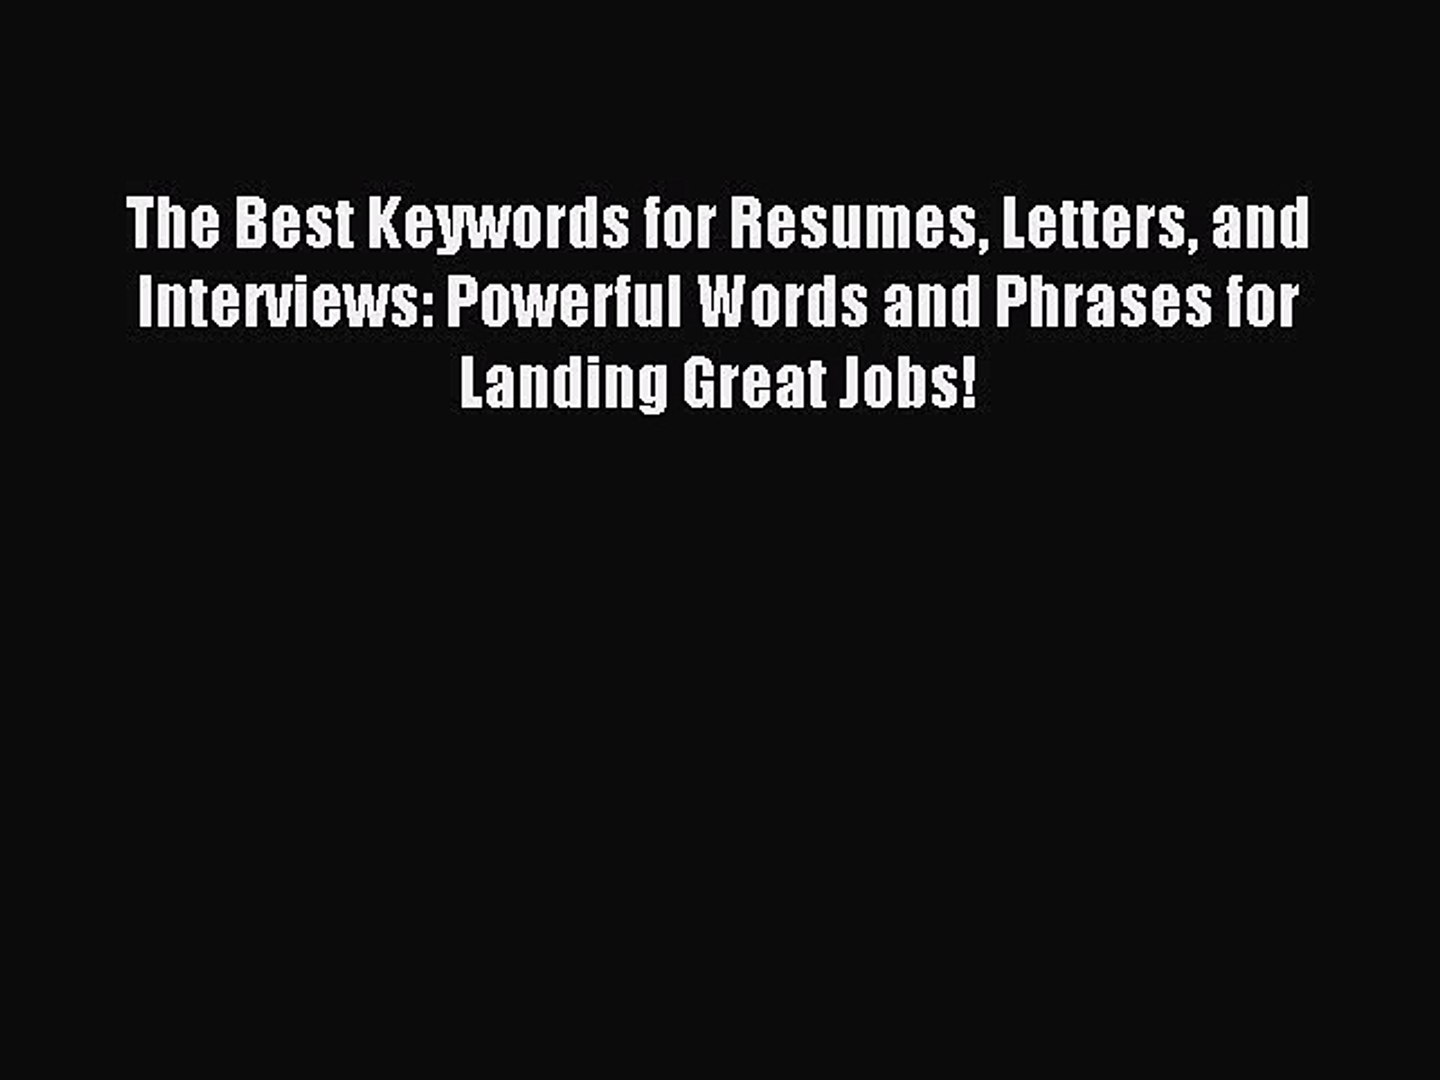 and Interviews Powerful Words and Phrases for Landing Great Jobs! The Best Keywords for Resumes Letters